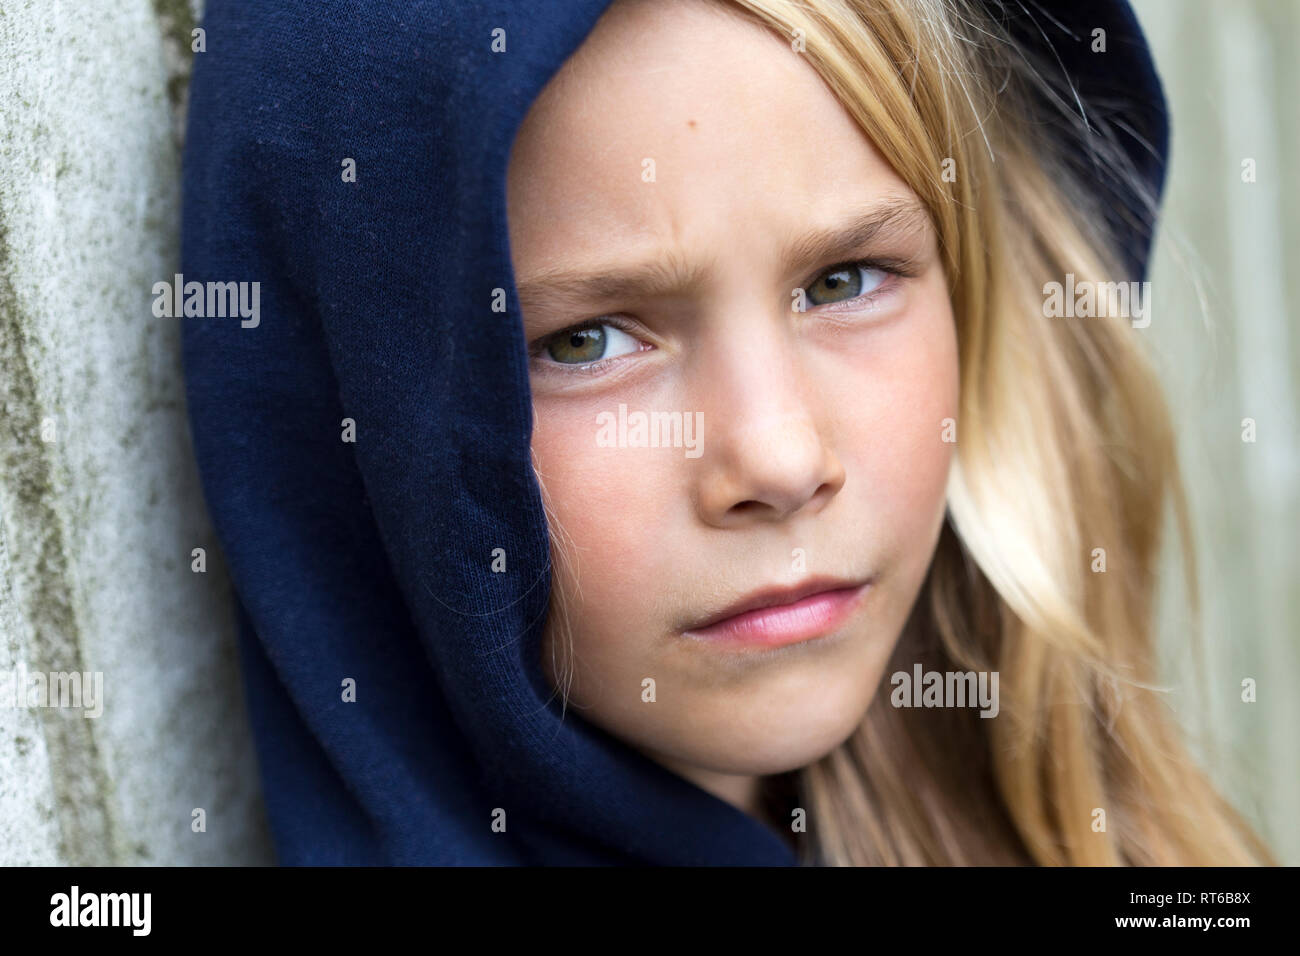 Portrait of unhappy blond girl - Stock Image